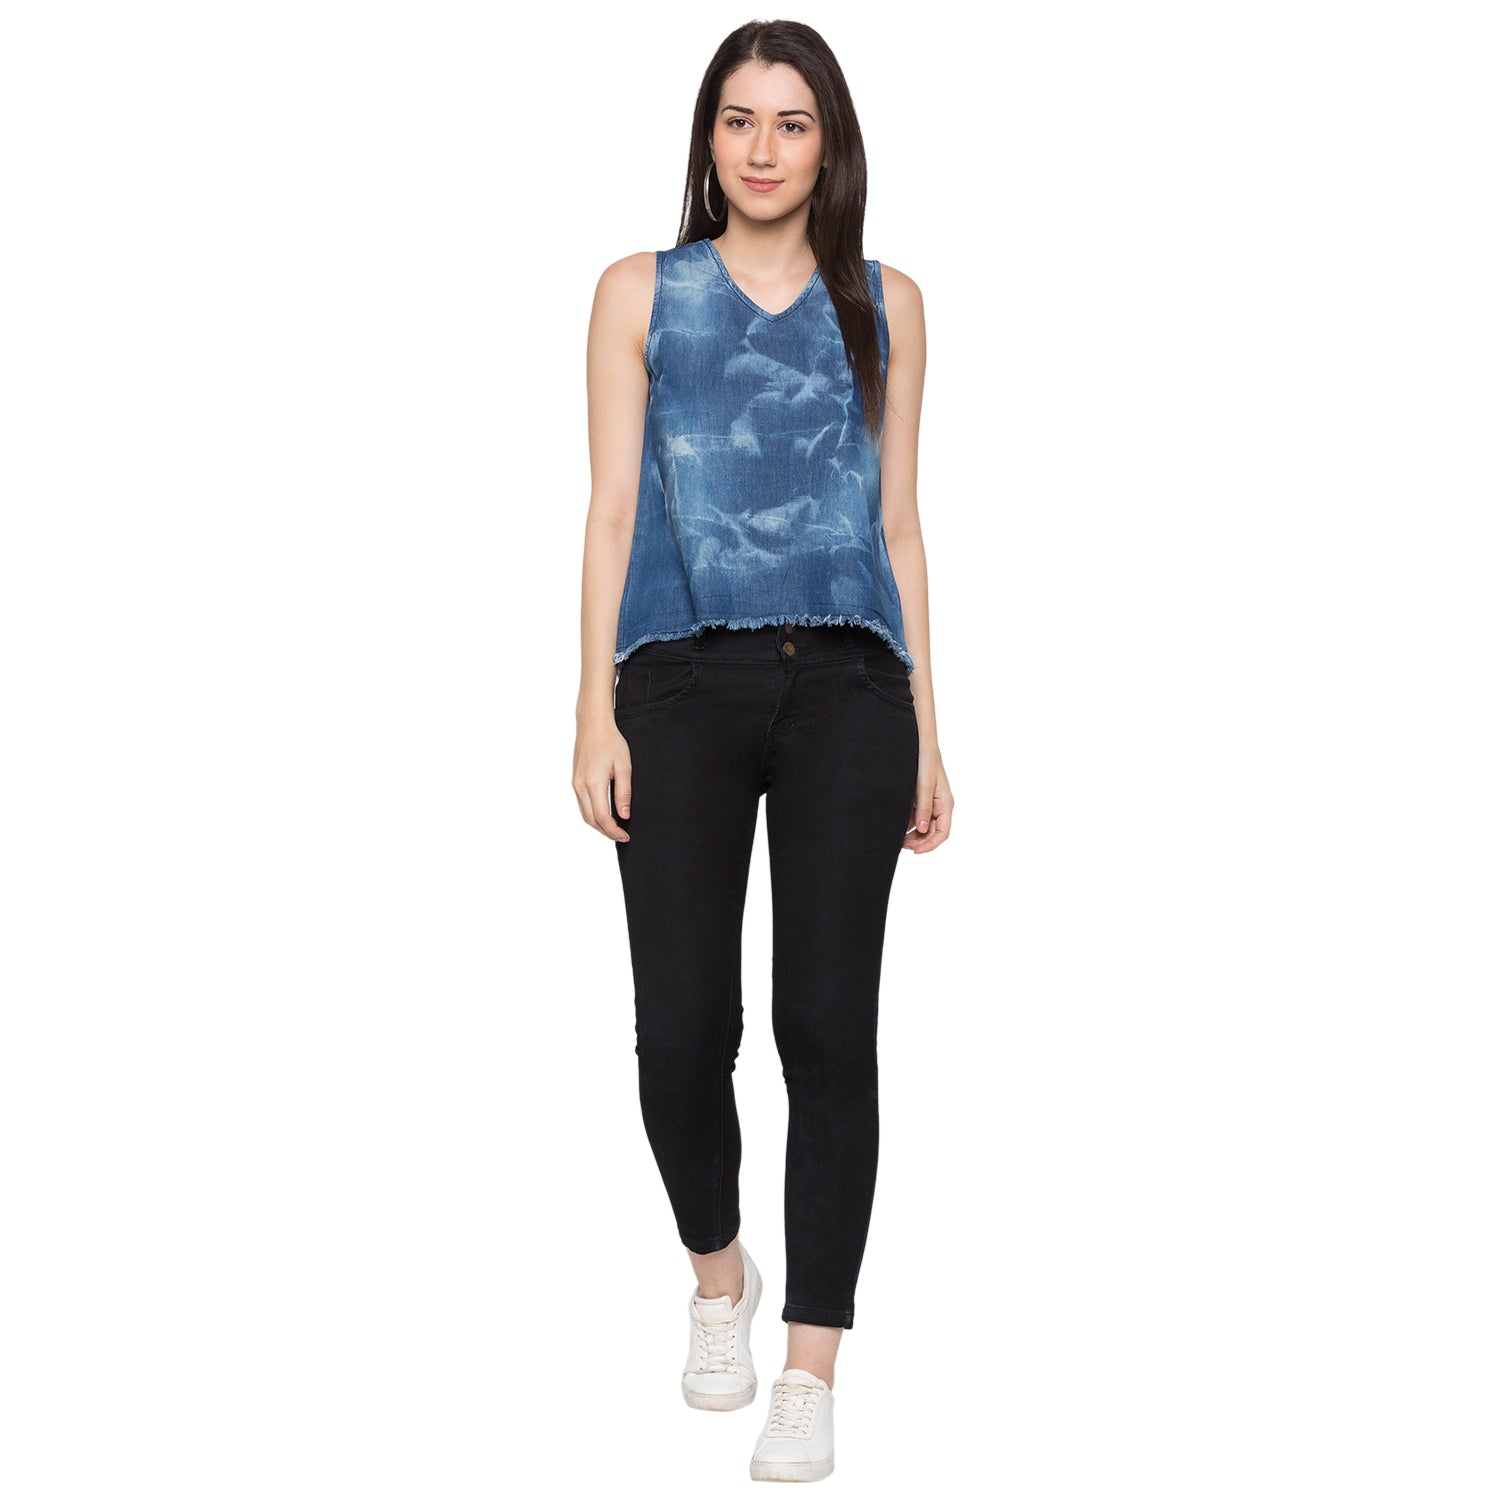 Globus Blue Printed Top4